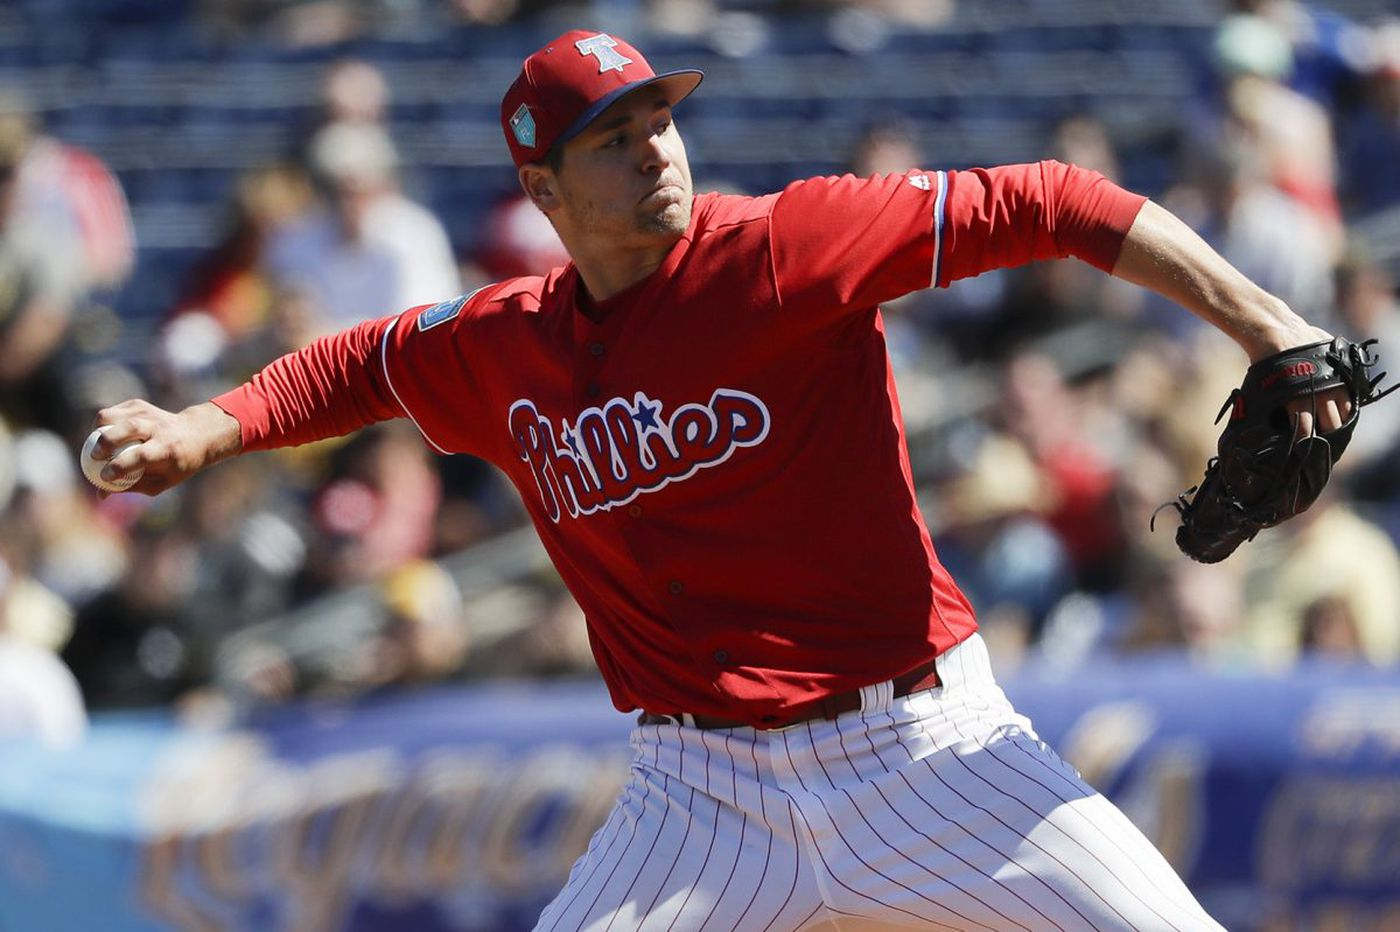 Phillies pitcher Jerad Eickhoff out six to eight weeks